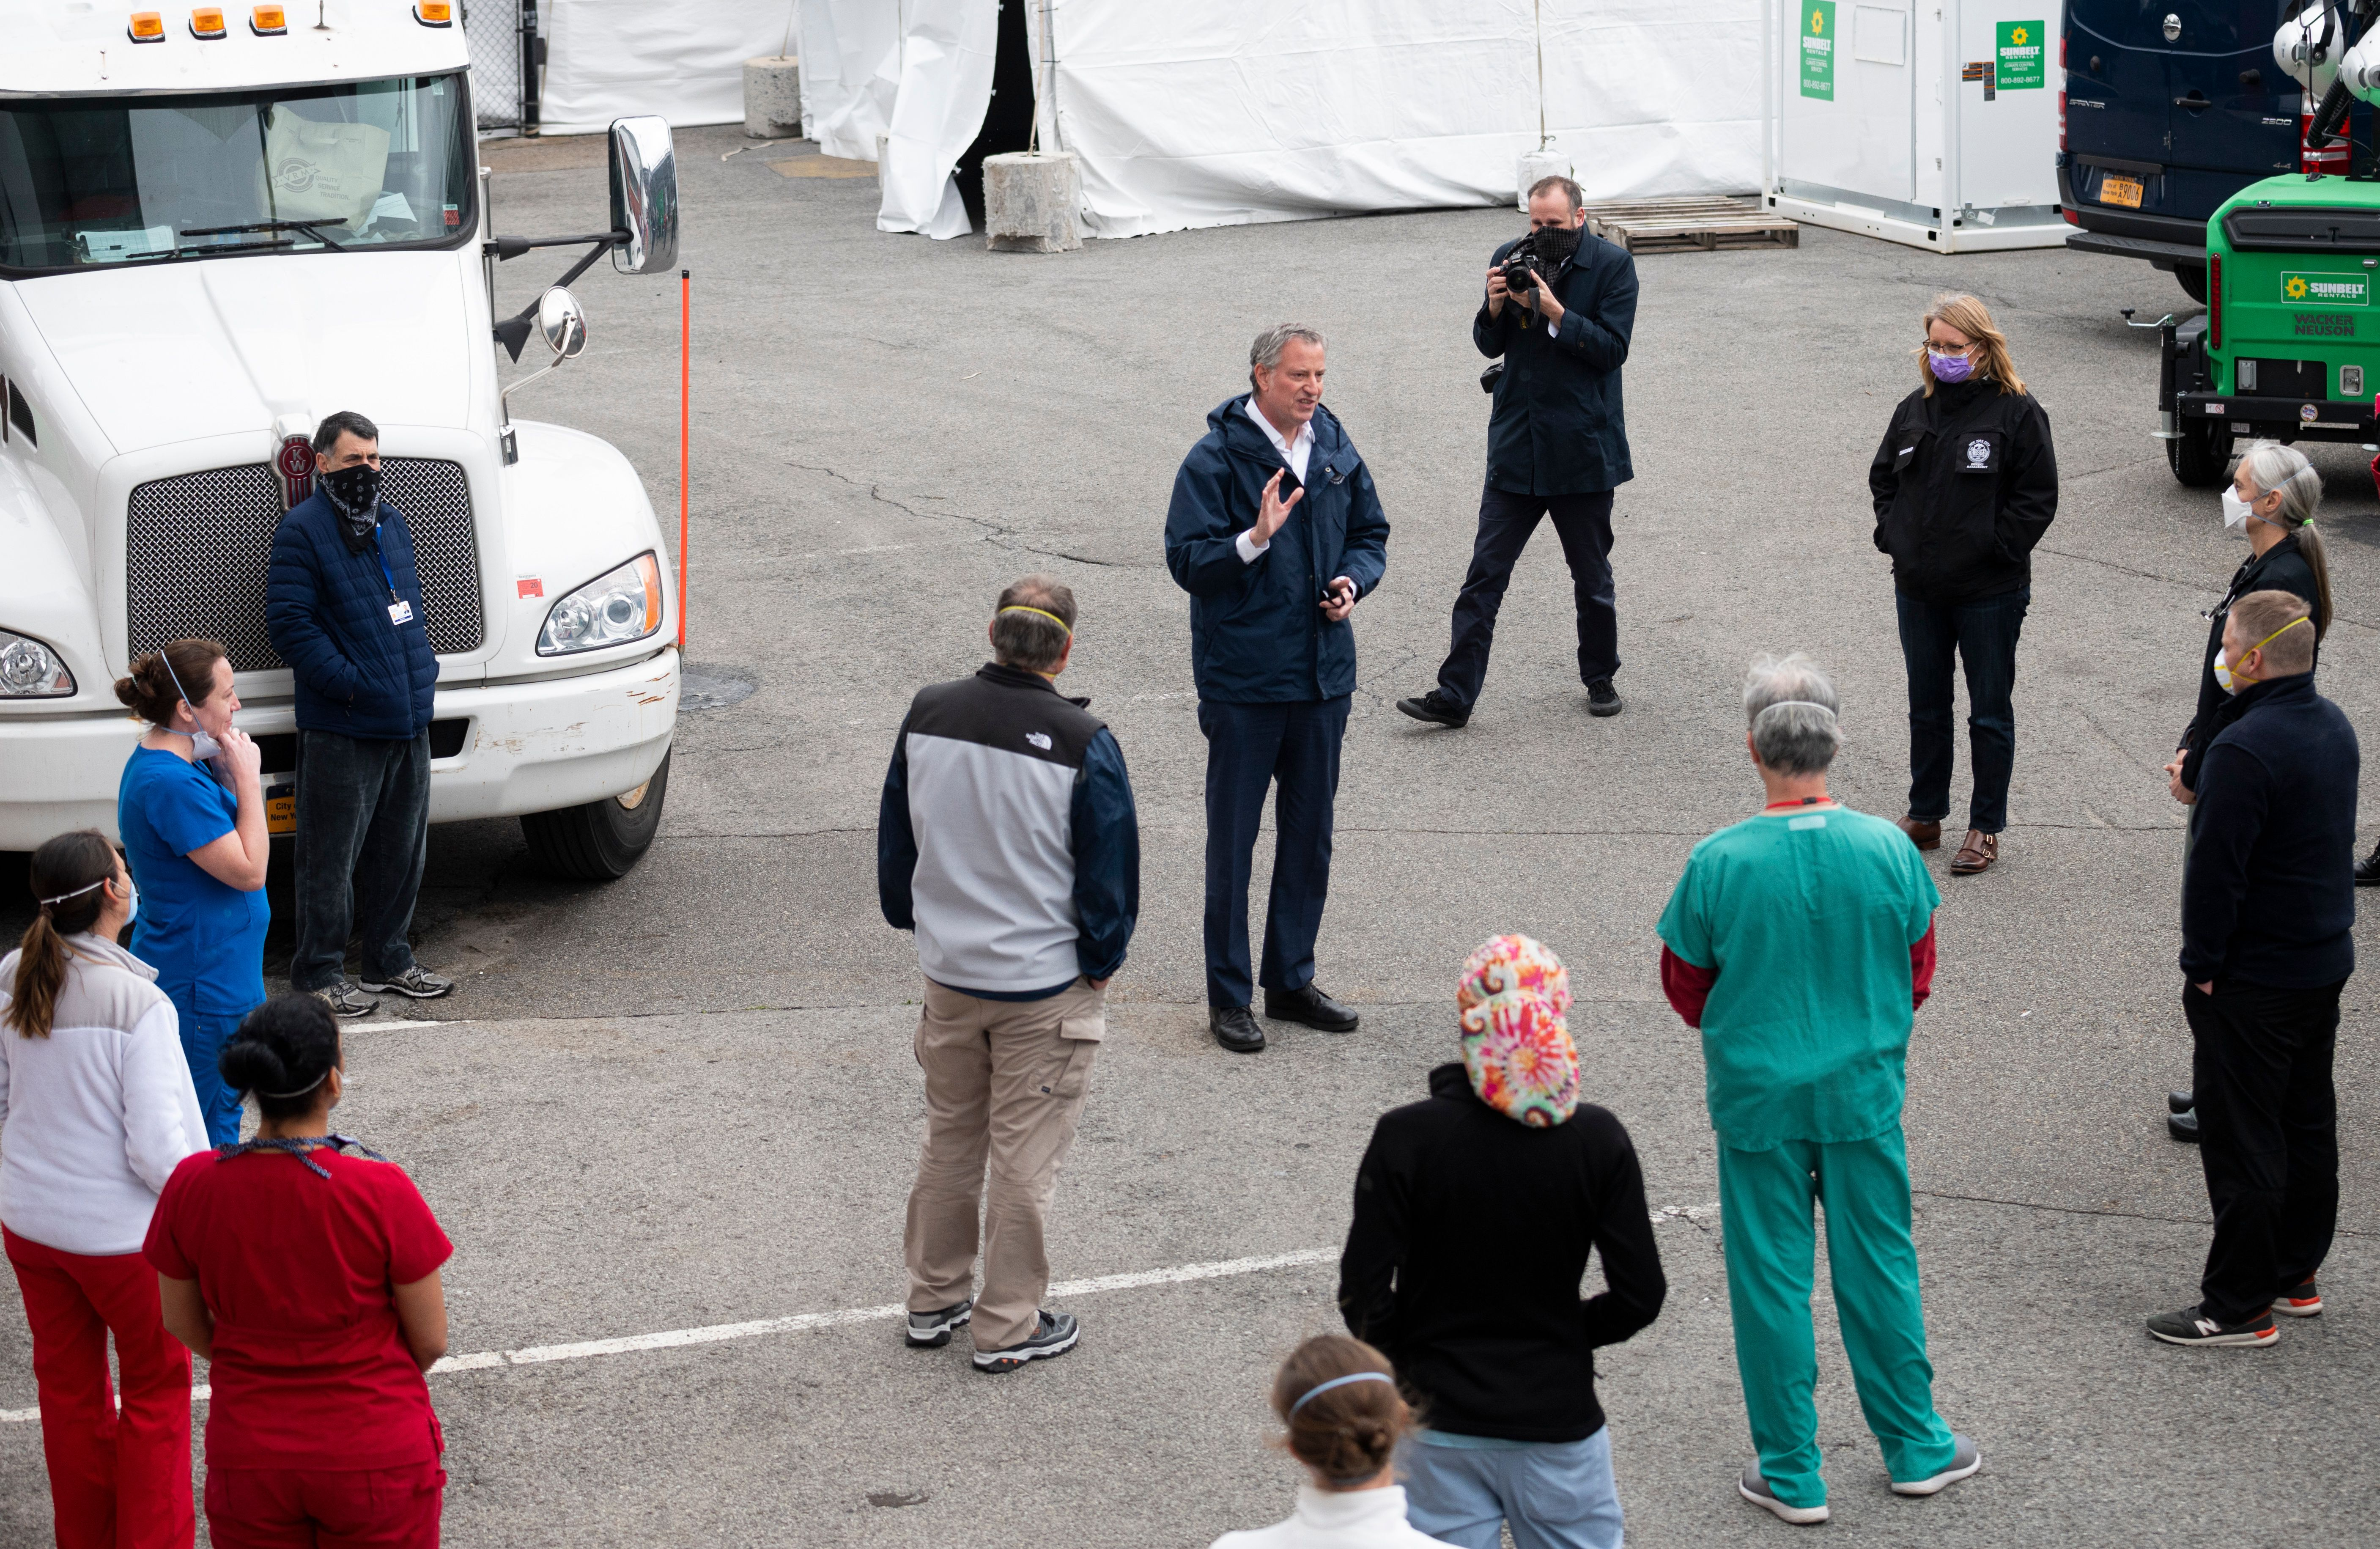 New York City Mayor Bill de Blasio, center, speaks during a press conference at a temporary hospital located at the USTA Billie Jean King National Tennis Center in New York City on April 10.